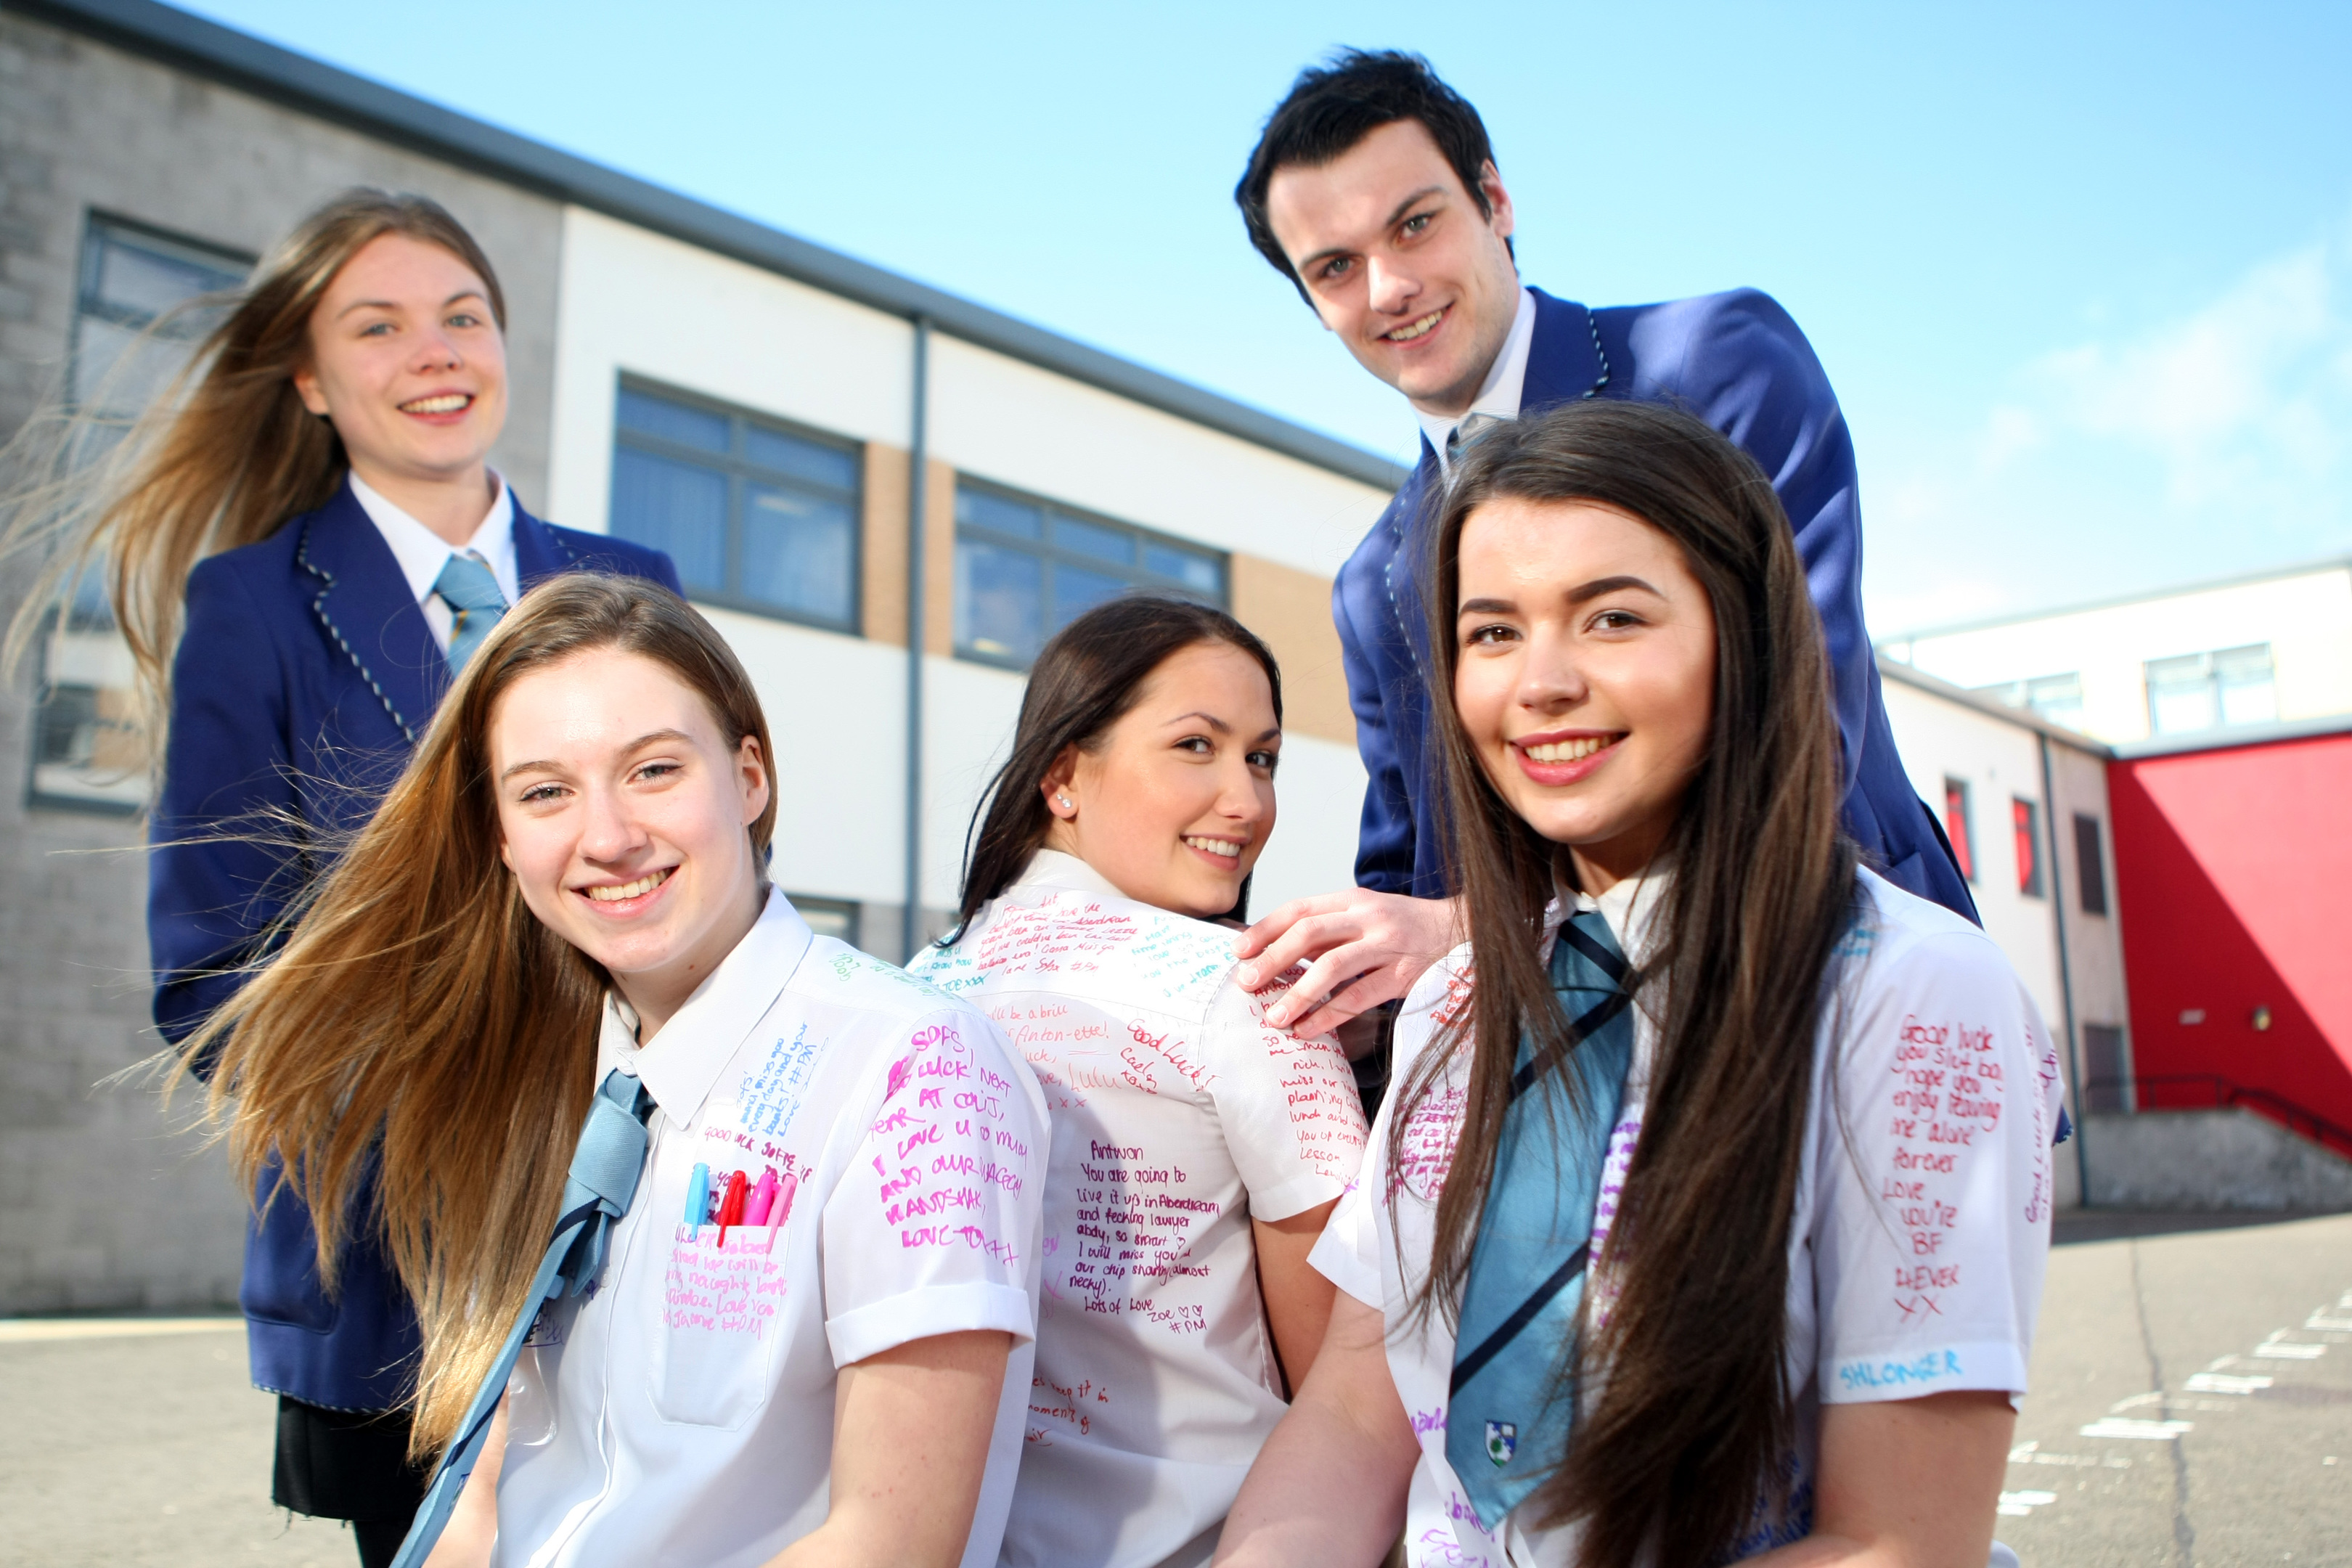 S6 pupils at Grove Academy taking part in the leaver's event. From left to right: Head girl, Caitlin Morgan, Sofie Tait, Sasha Carroll, Antonia Holligan and Head boy Paul Callaghan